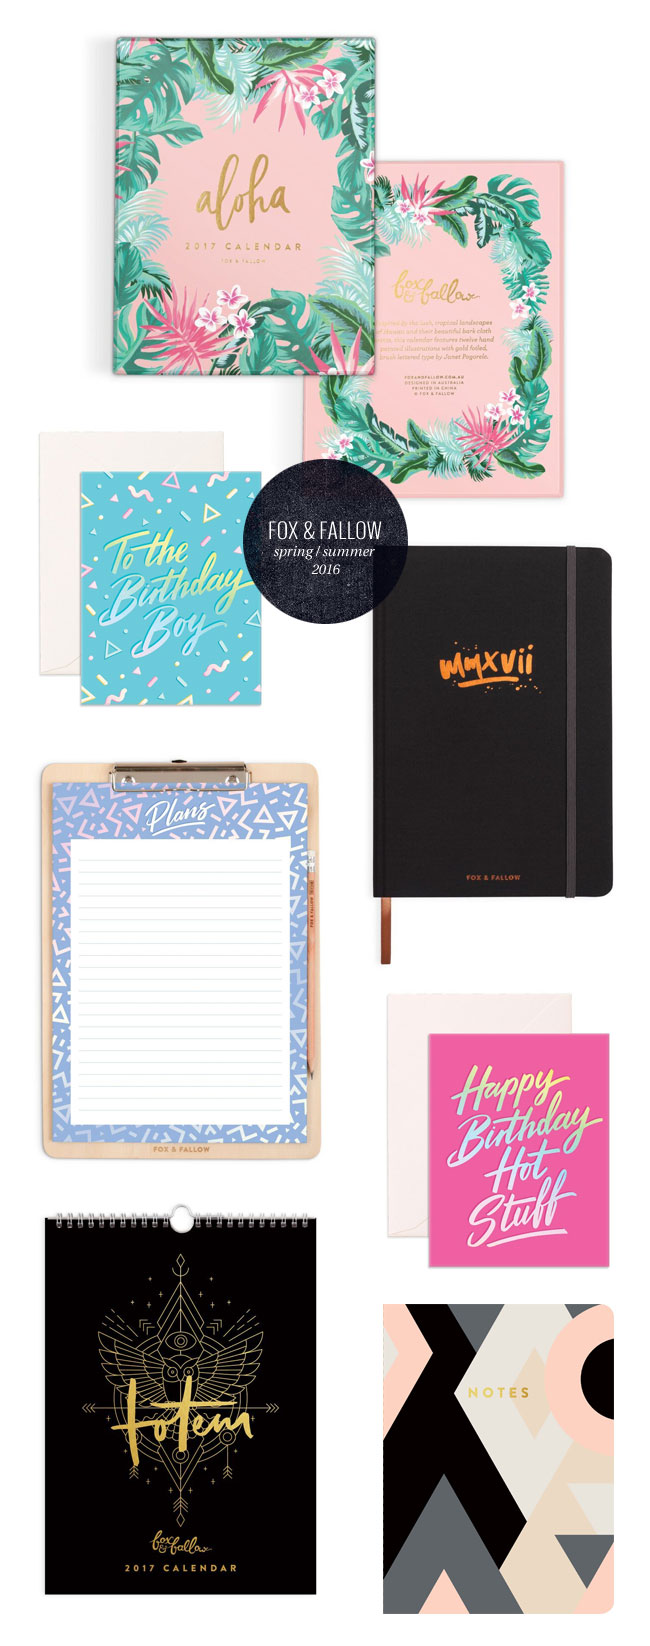 Fox & Fallow Spring / Summer 2016 Paper Goods & Stationery Collections